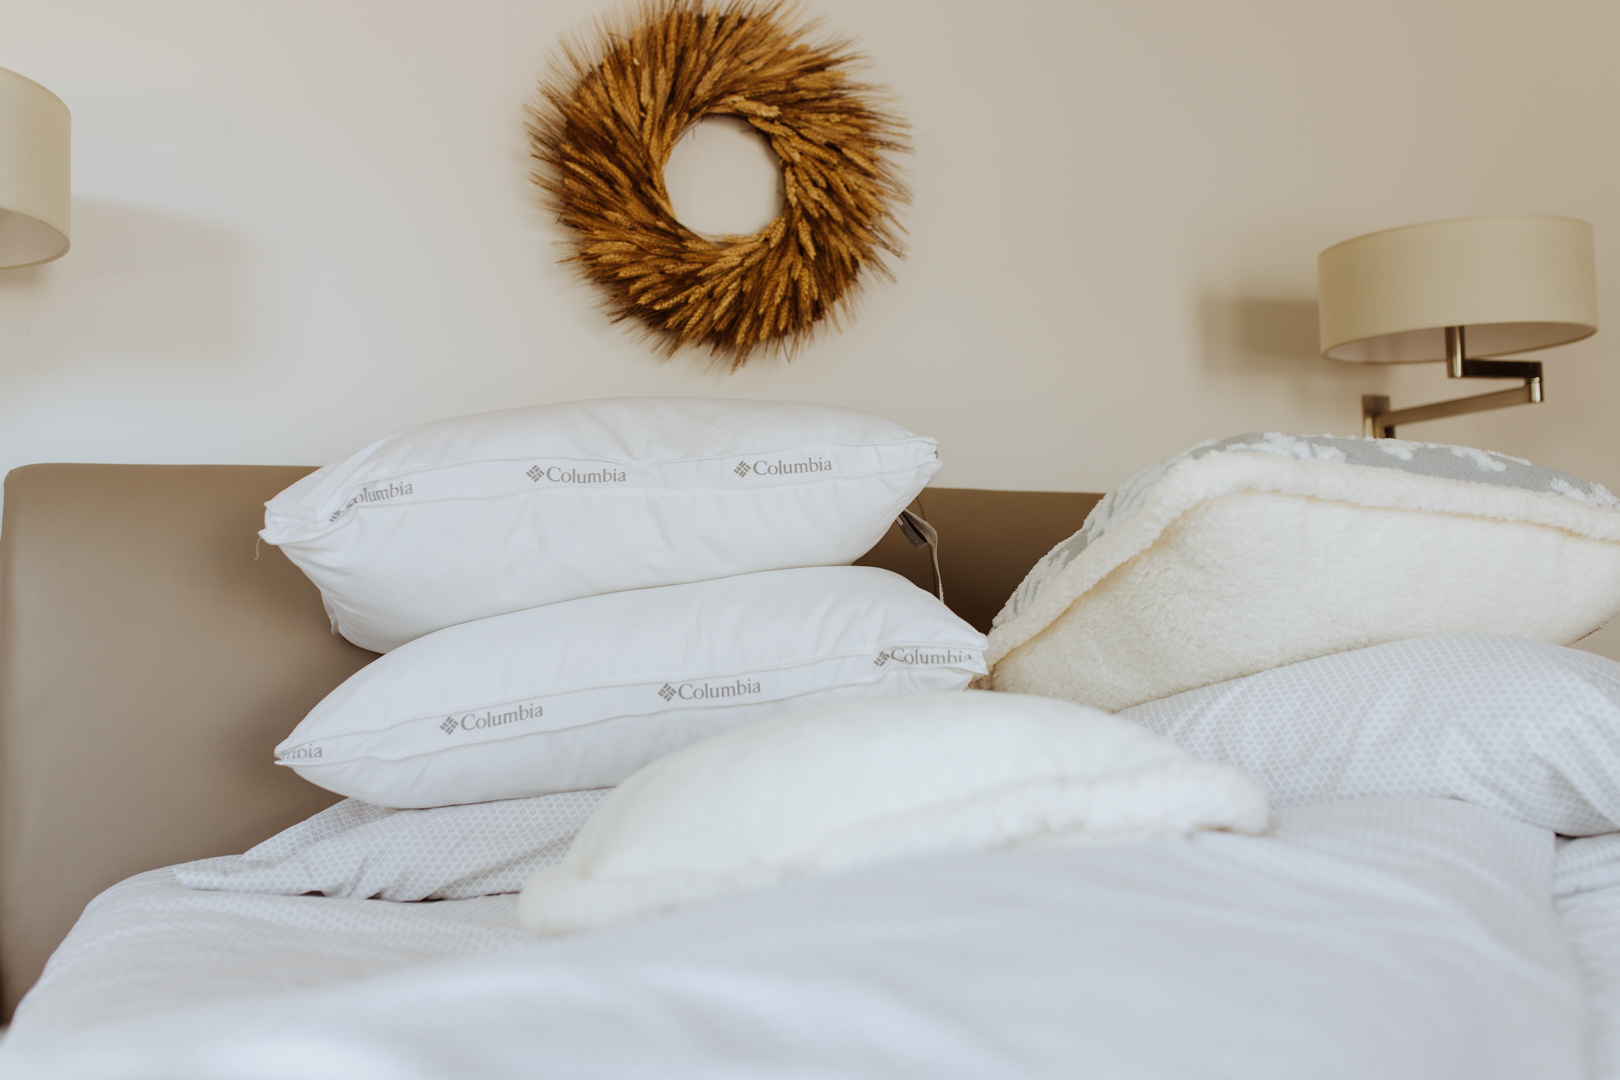 fresh new Columbia pillows for our new guest room | thelovedesignedlife.com #winterbedding #kohlsfinds #pillows